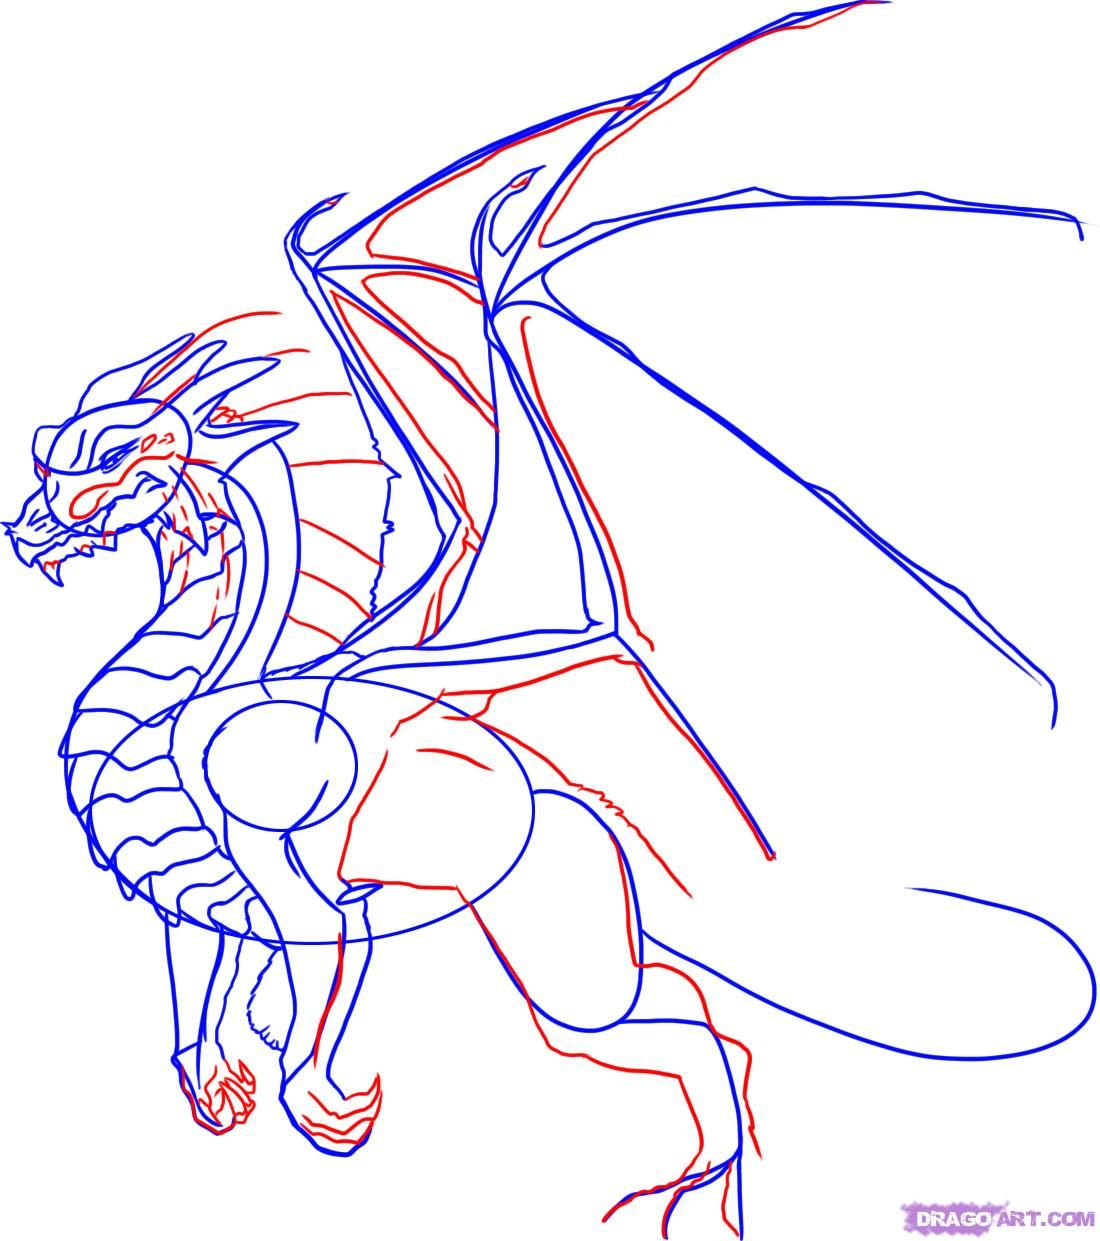 how to draw the head of a dragon step by step 6